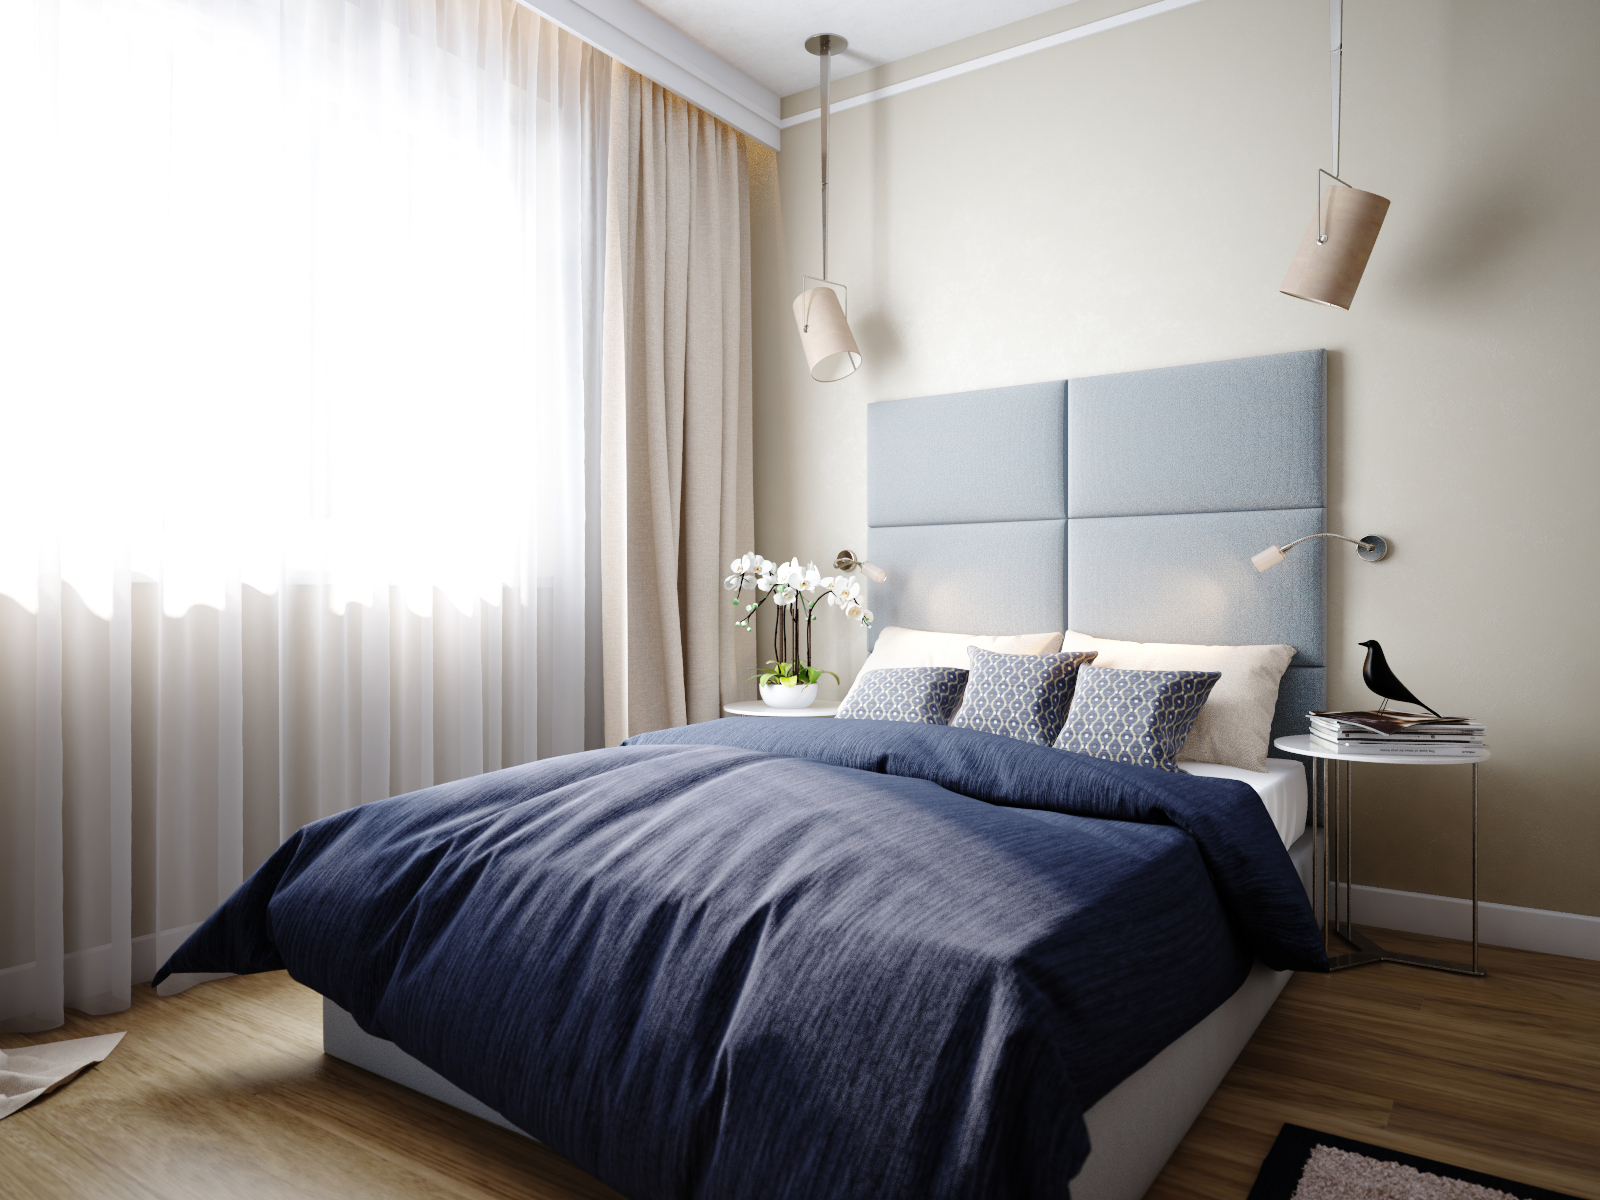 Bedroom design with blue color